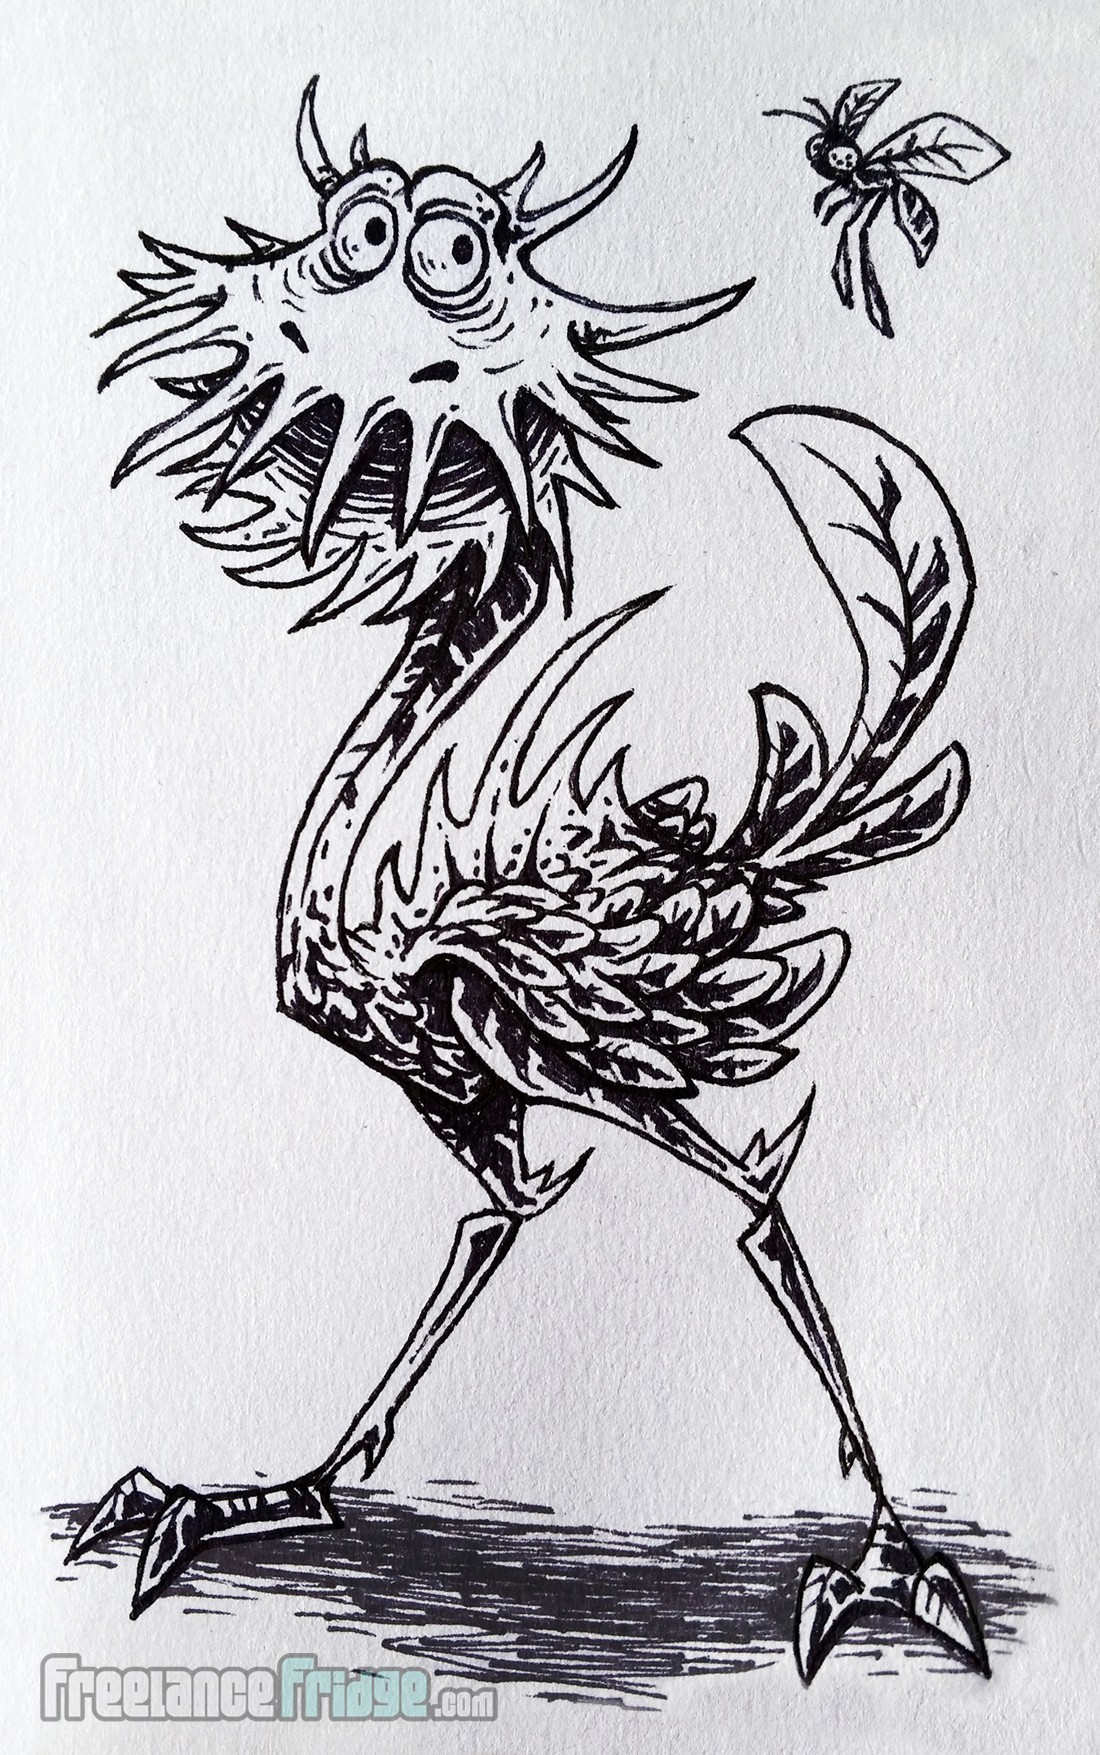 venus fly trap ostrich cartoon creature monster inked drawing